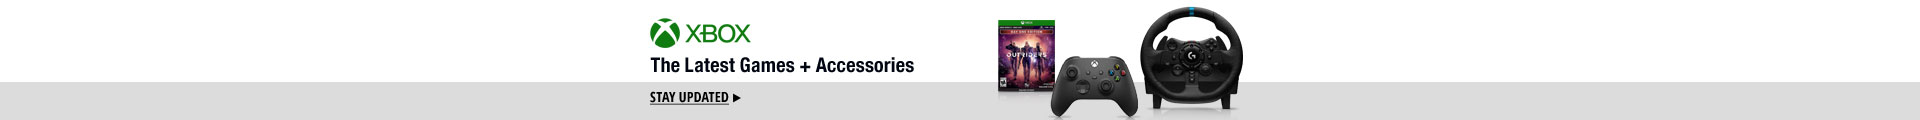 XBOX The Latest Games + Accessories